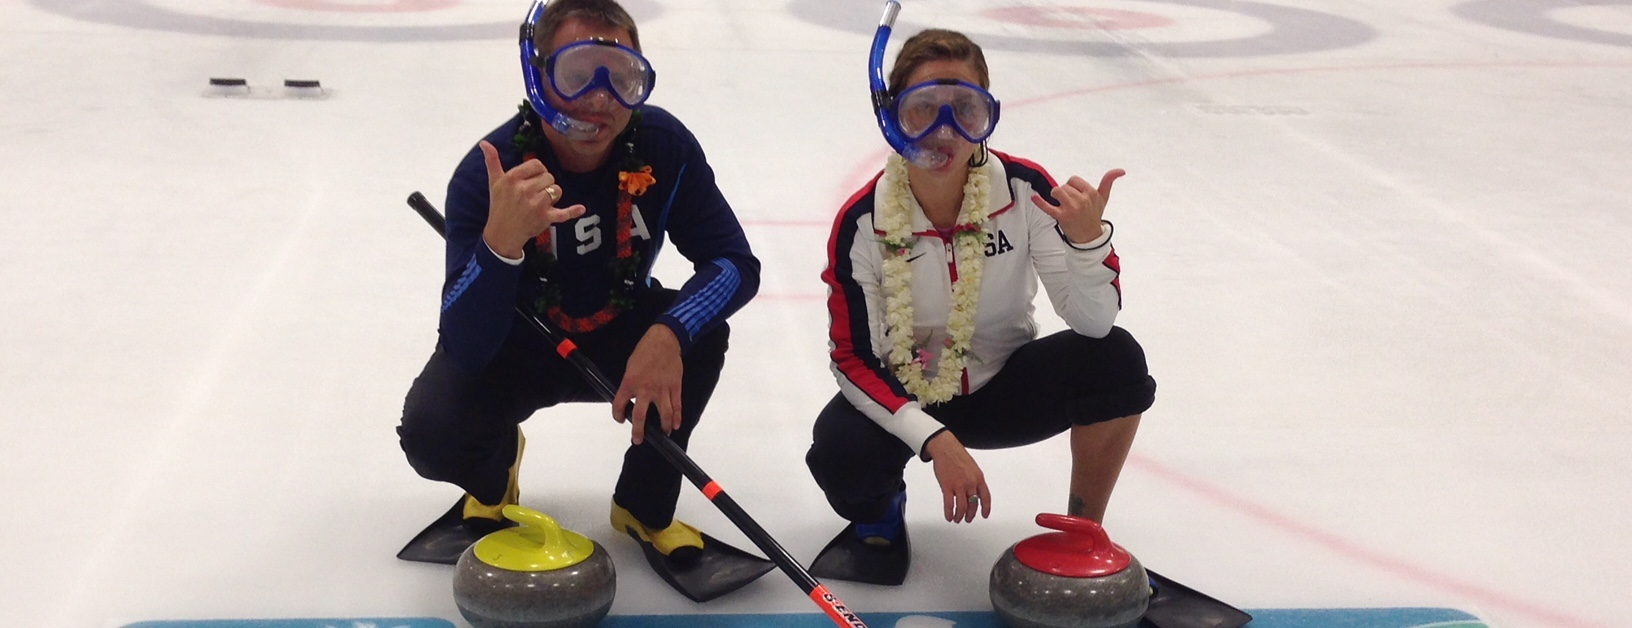 Curling with Aloha - Hosted By American Savings BankProud Supporter of USA Curling and Team USA